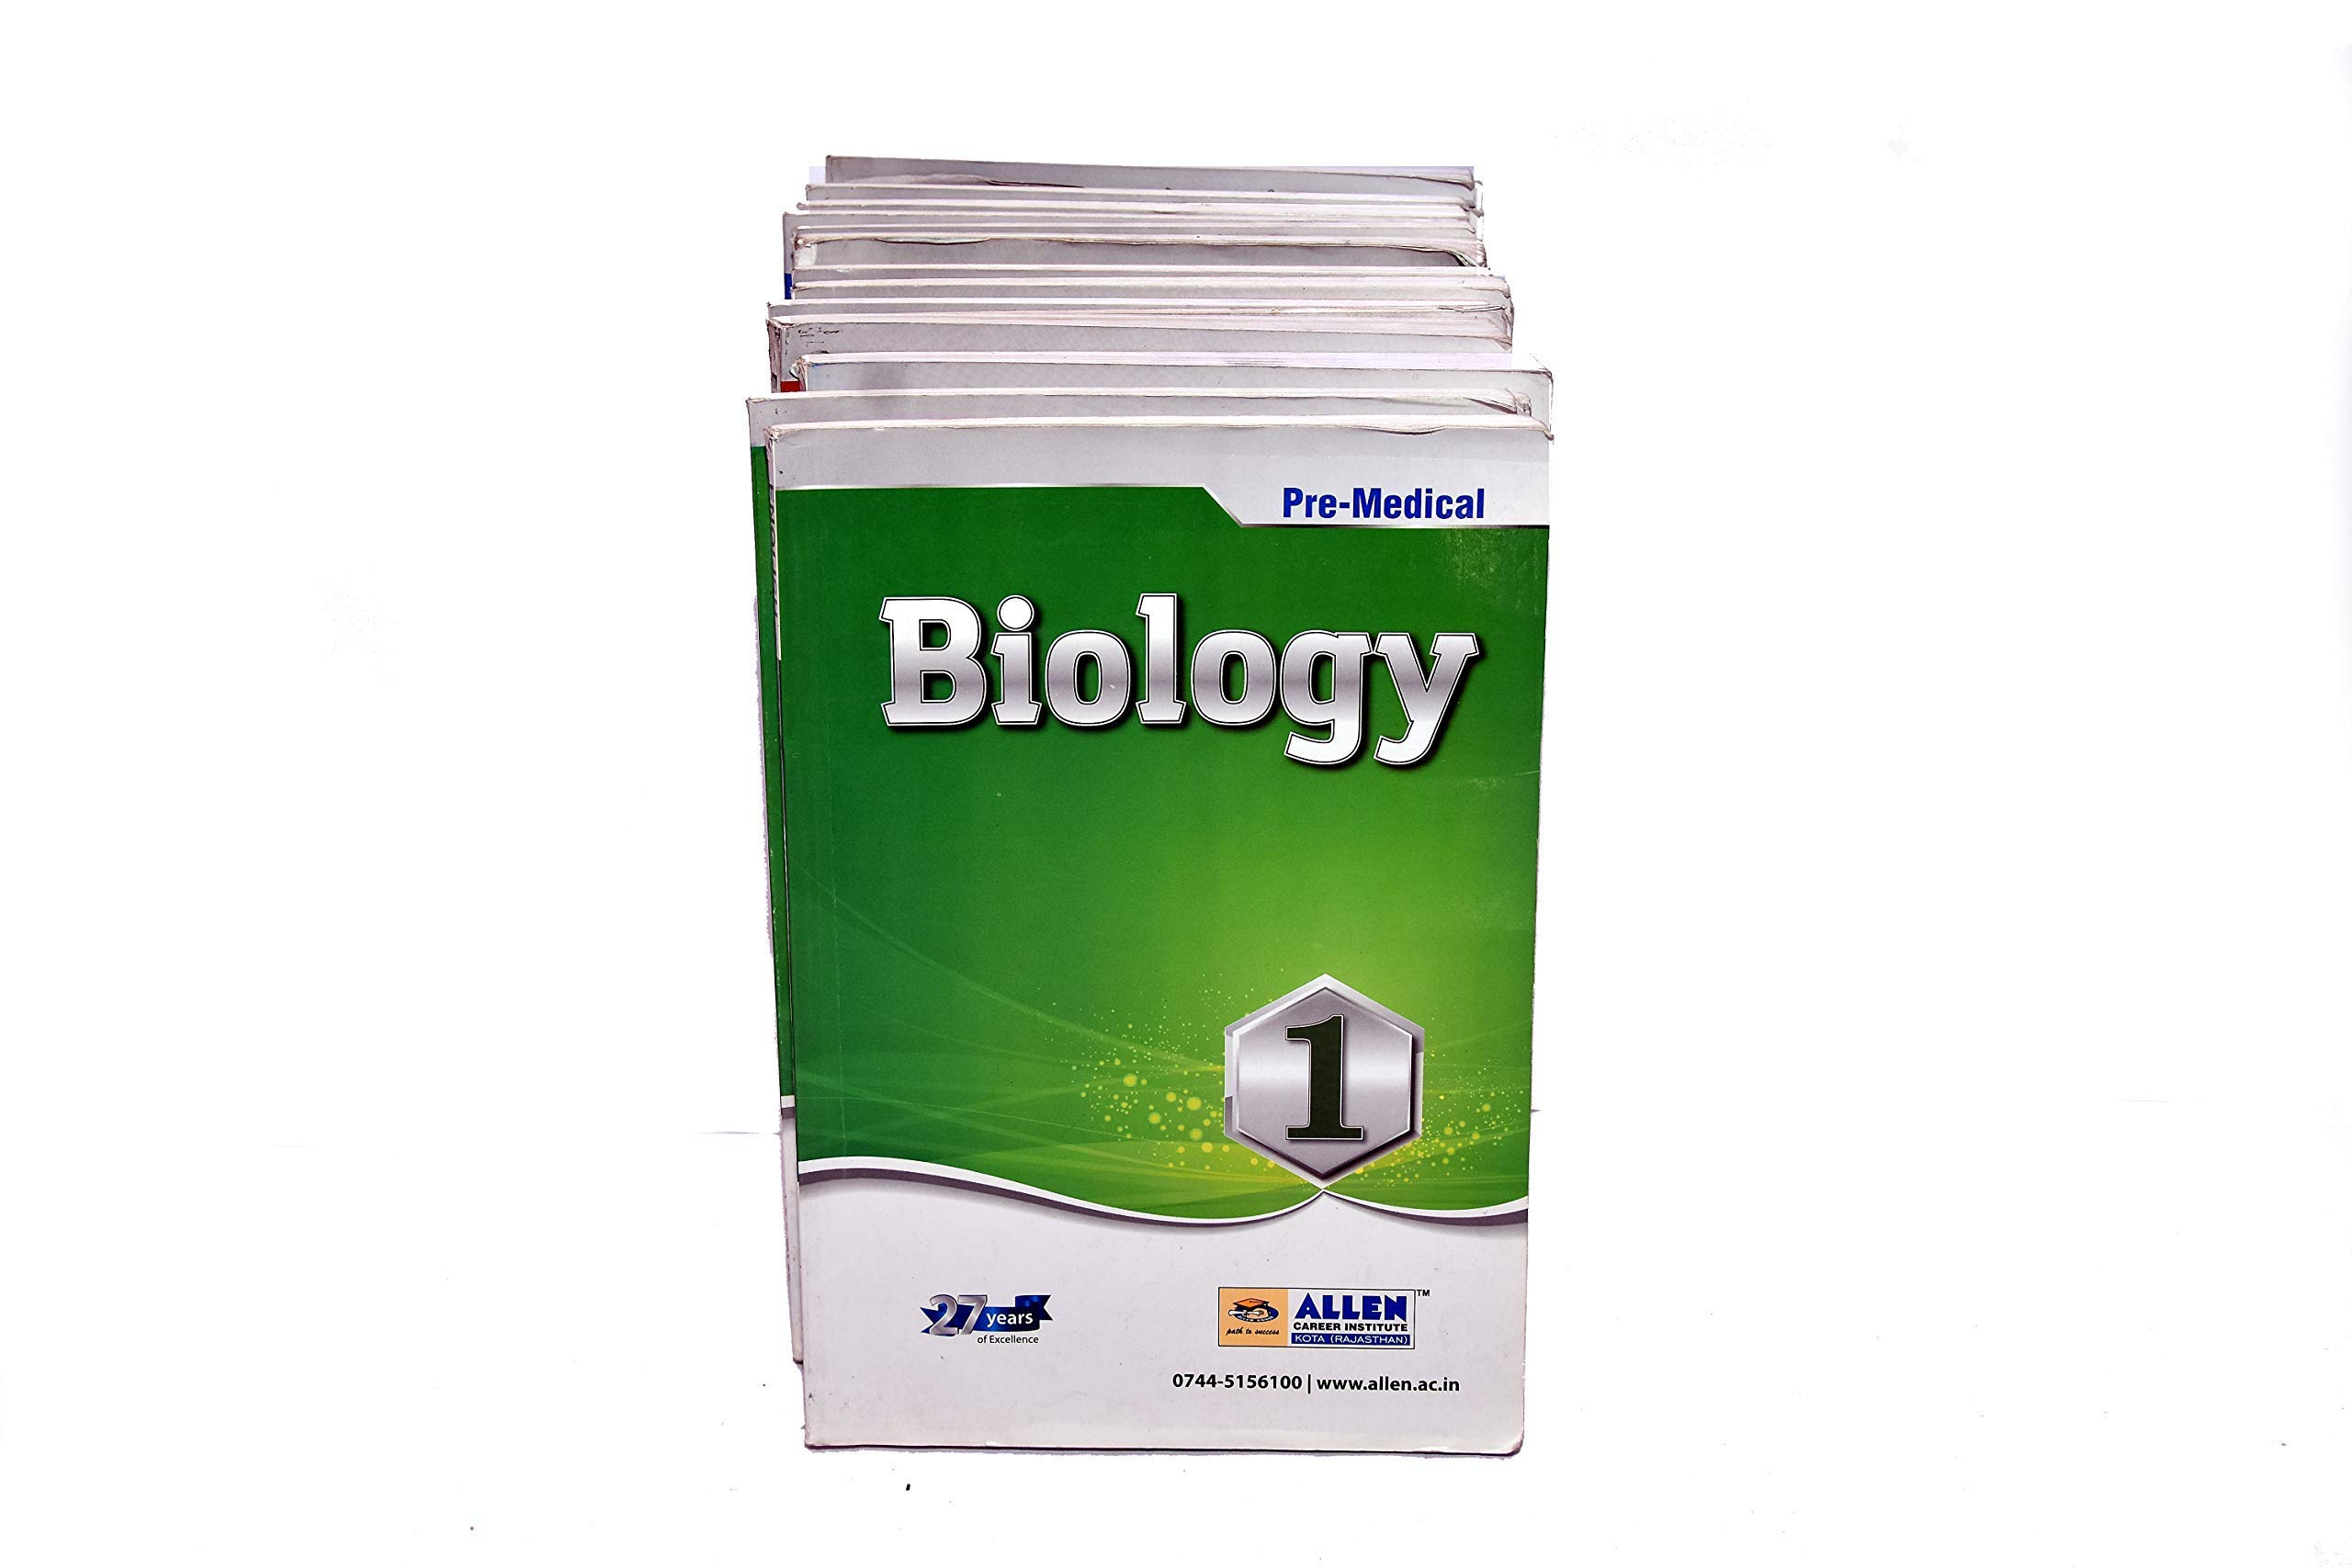 Buy Allen Medical Books For NEET/AIMS Preparation Book Online at Low